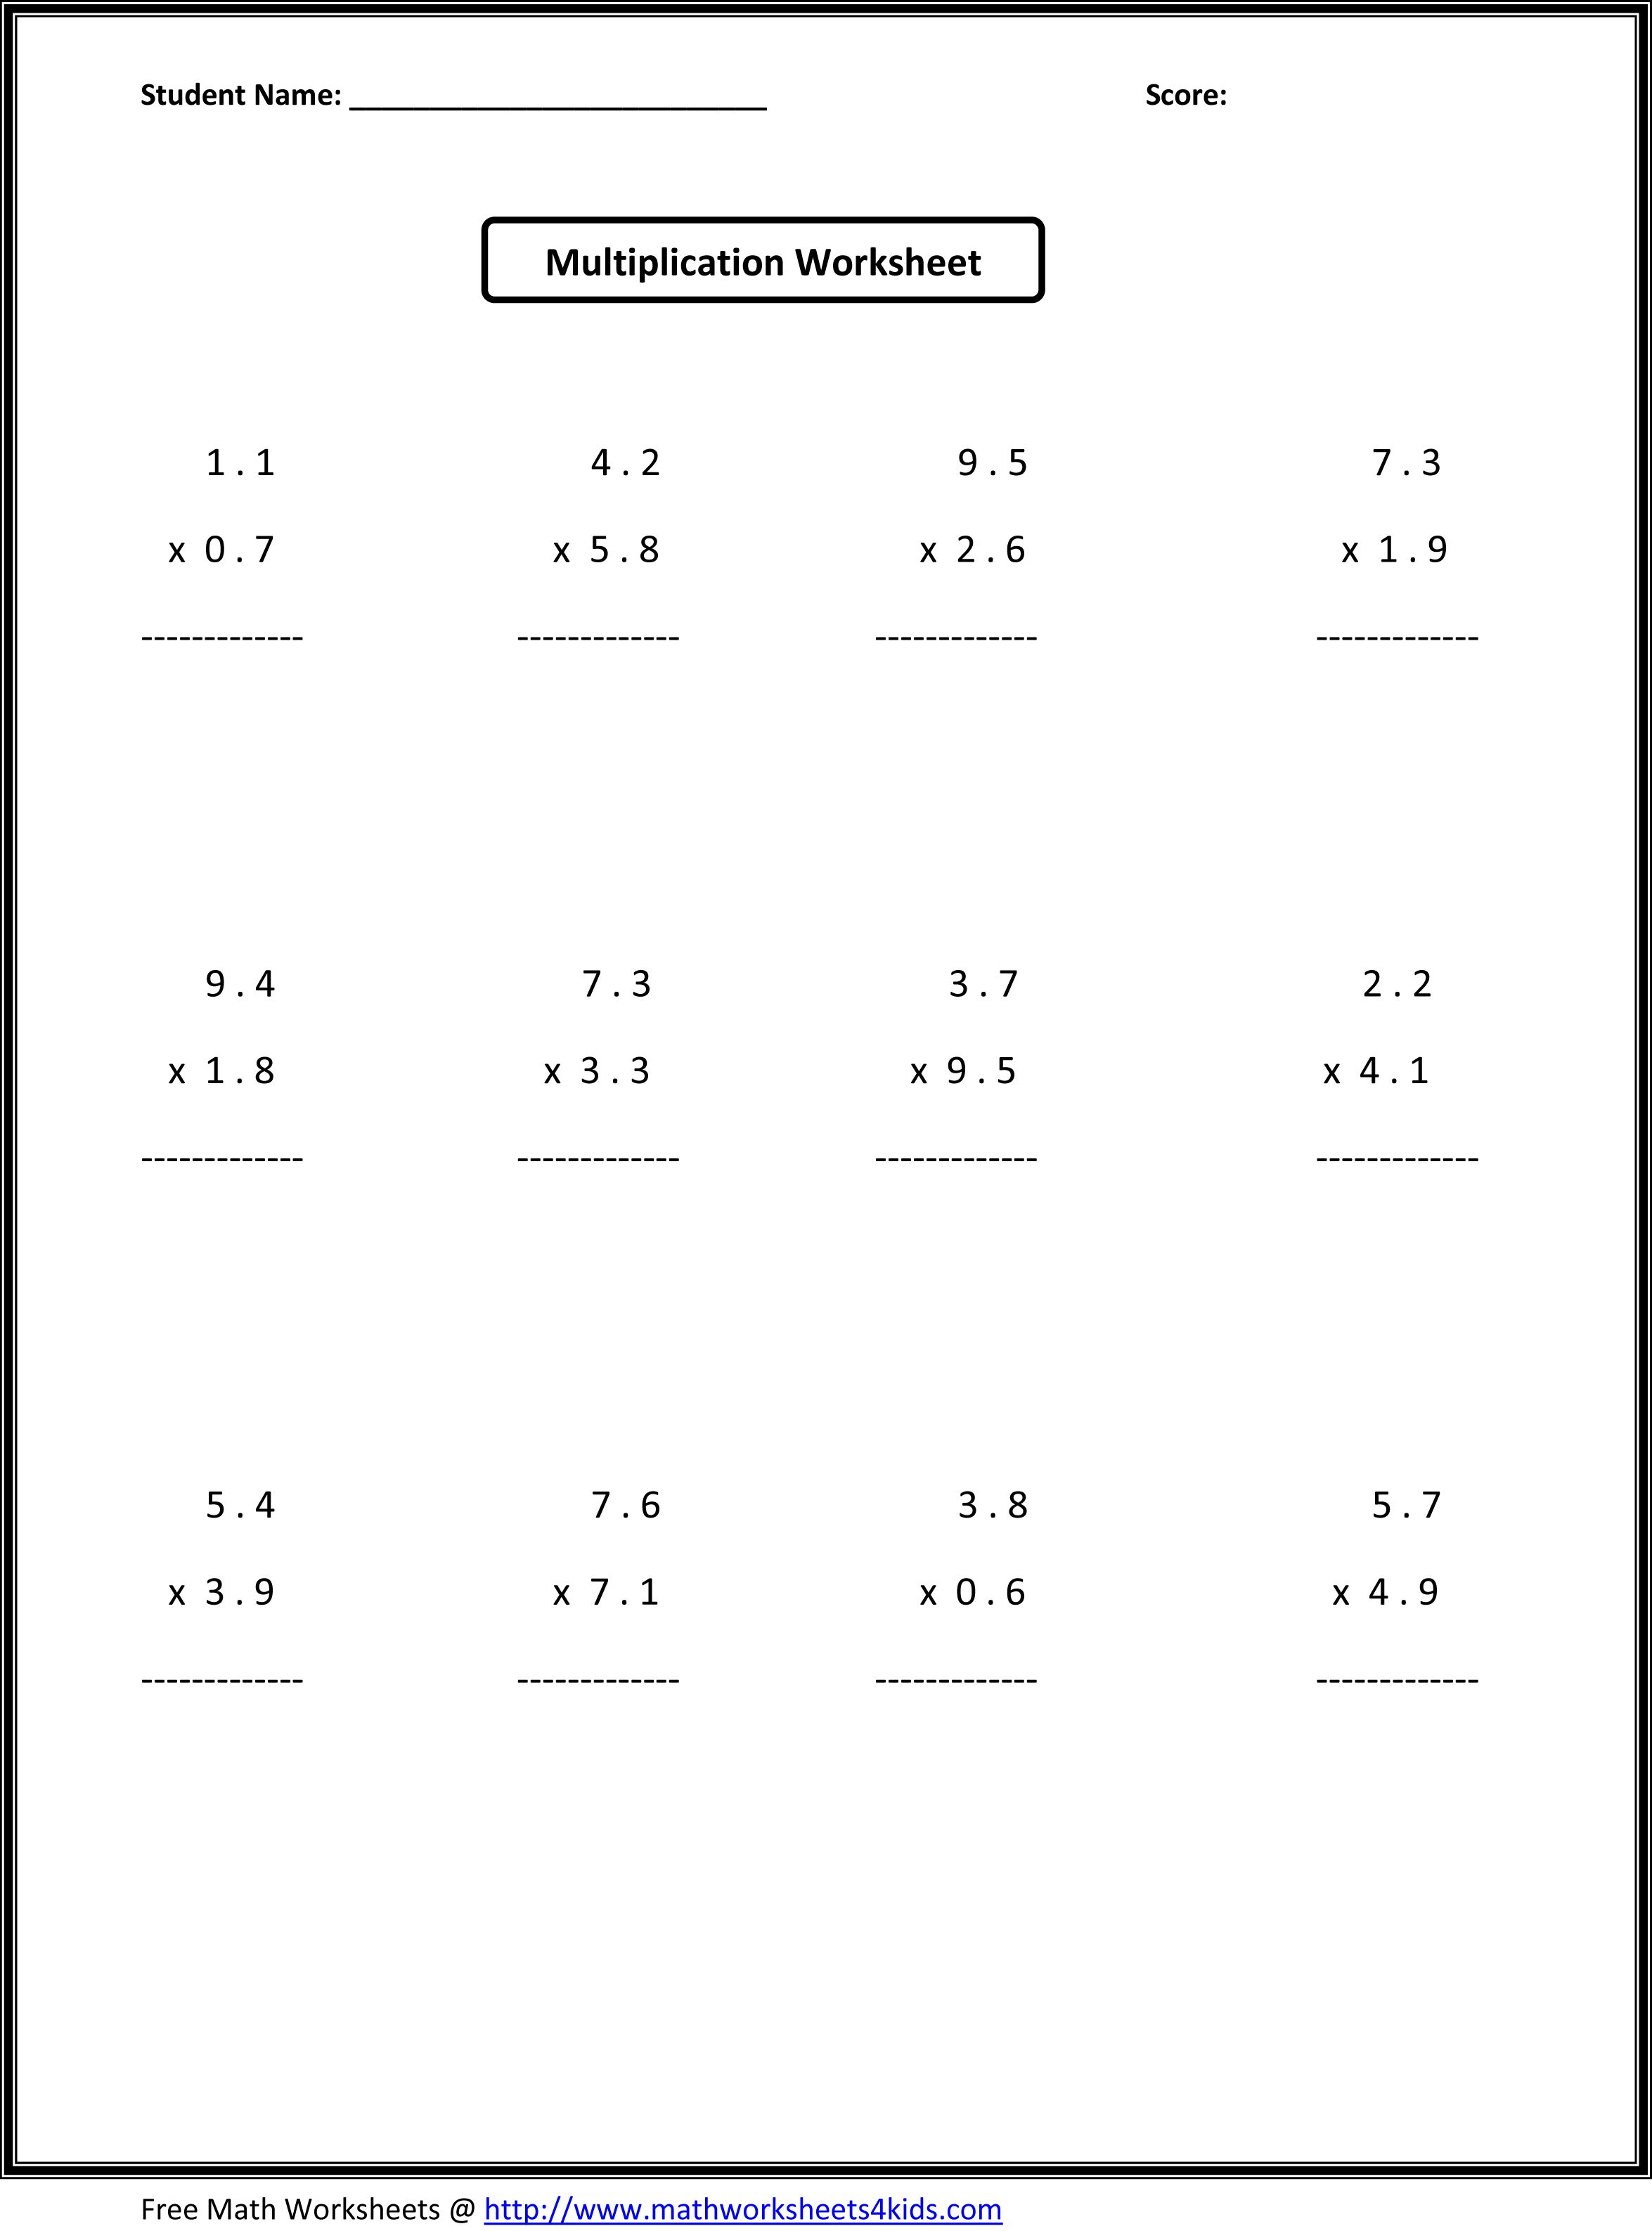 7Th Grade Math Worksheets | Value Worksheets Absolute Value - Free Printable Math Worksheets 6Th Grade Order Operations